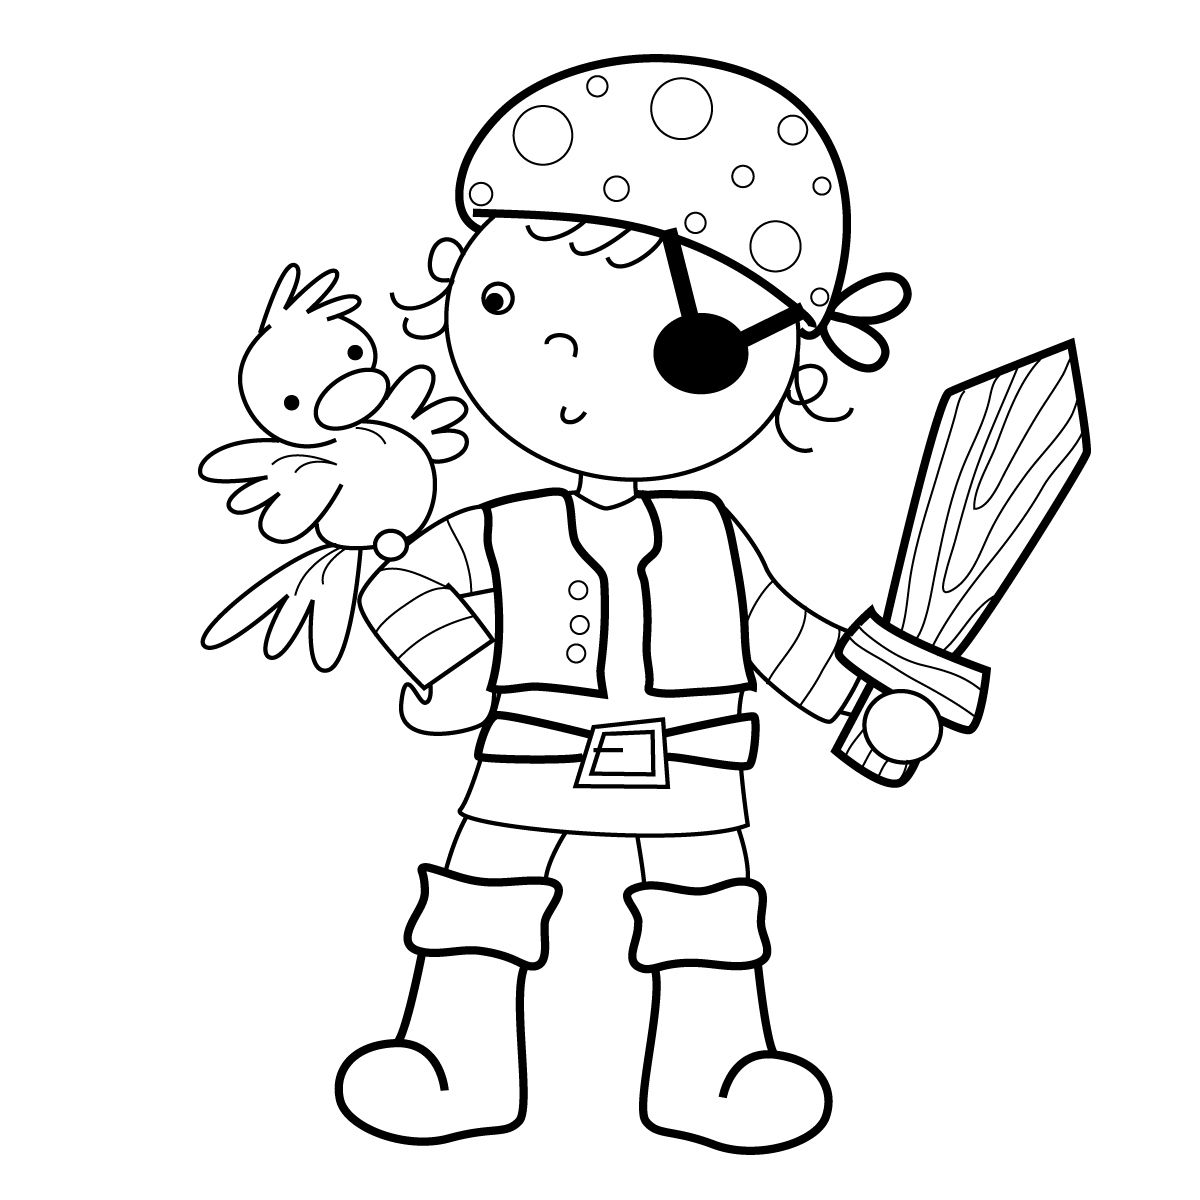 pirate coloring pages for preschool free printable pirate coloring pages for kids pirate pages preschool coloring for